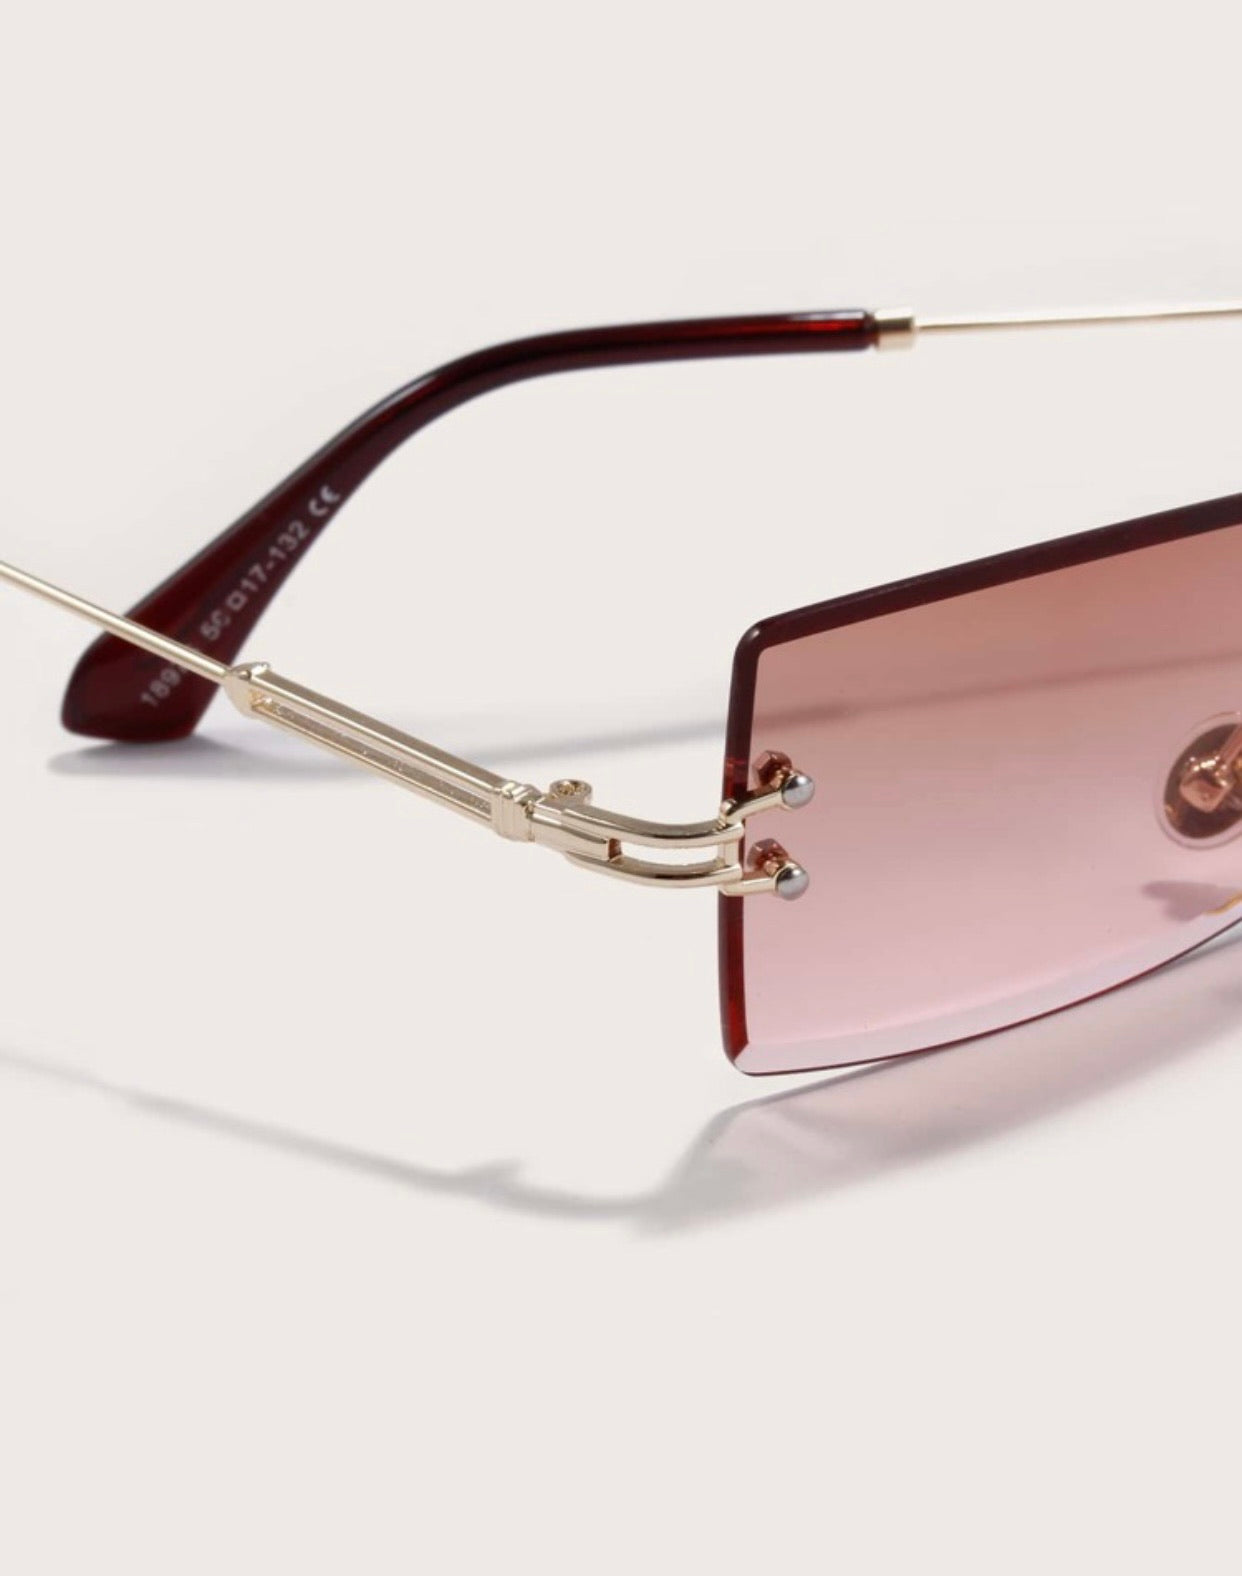 Cartier Me Shades - Brown